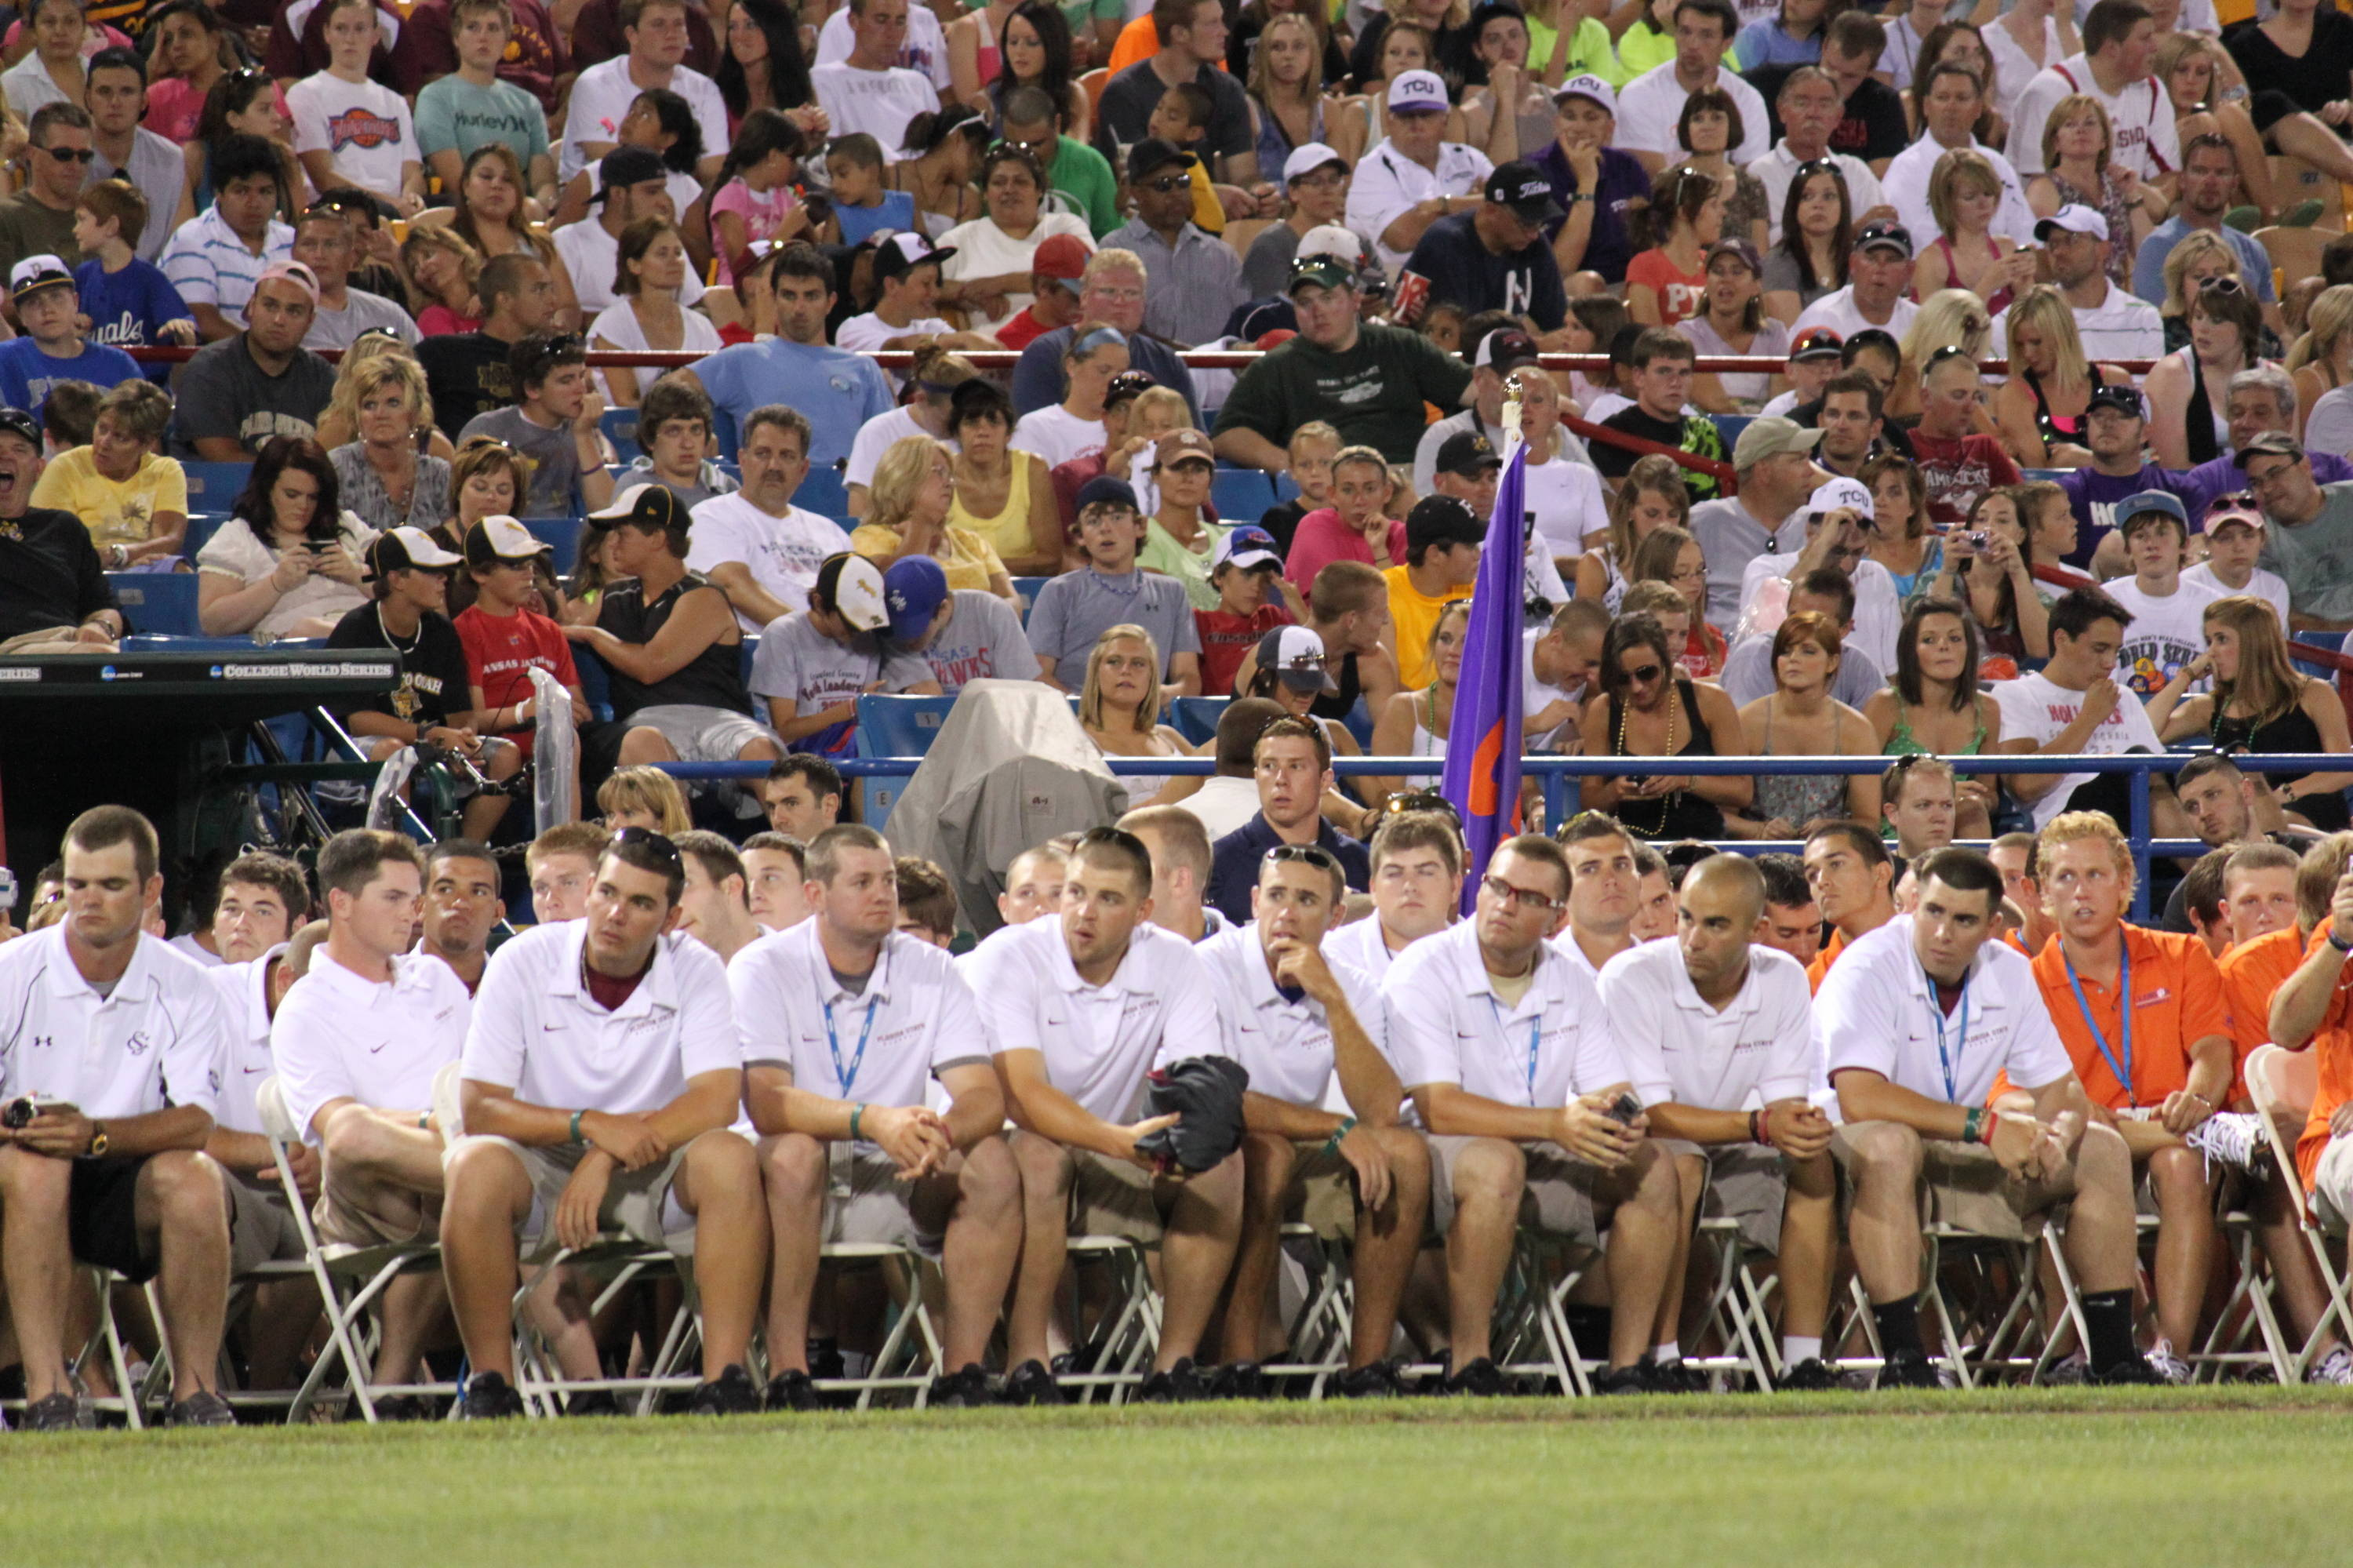 2010 CWS College Baseball Opening Ceremony